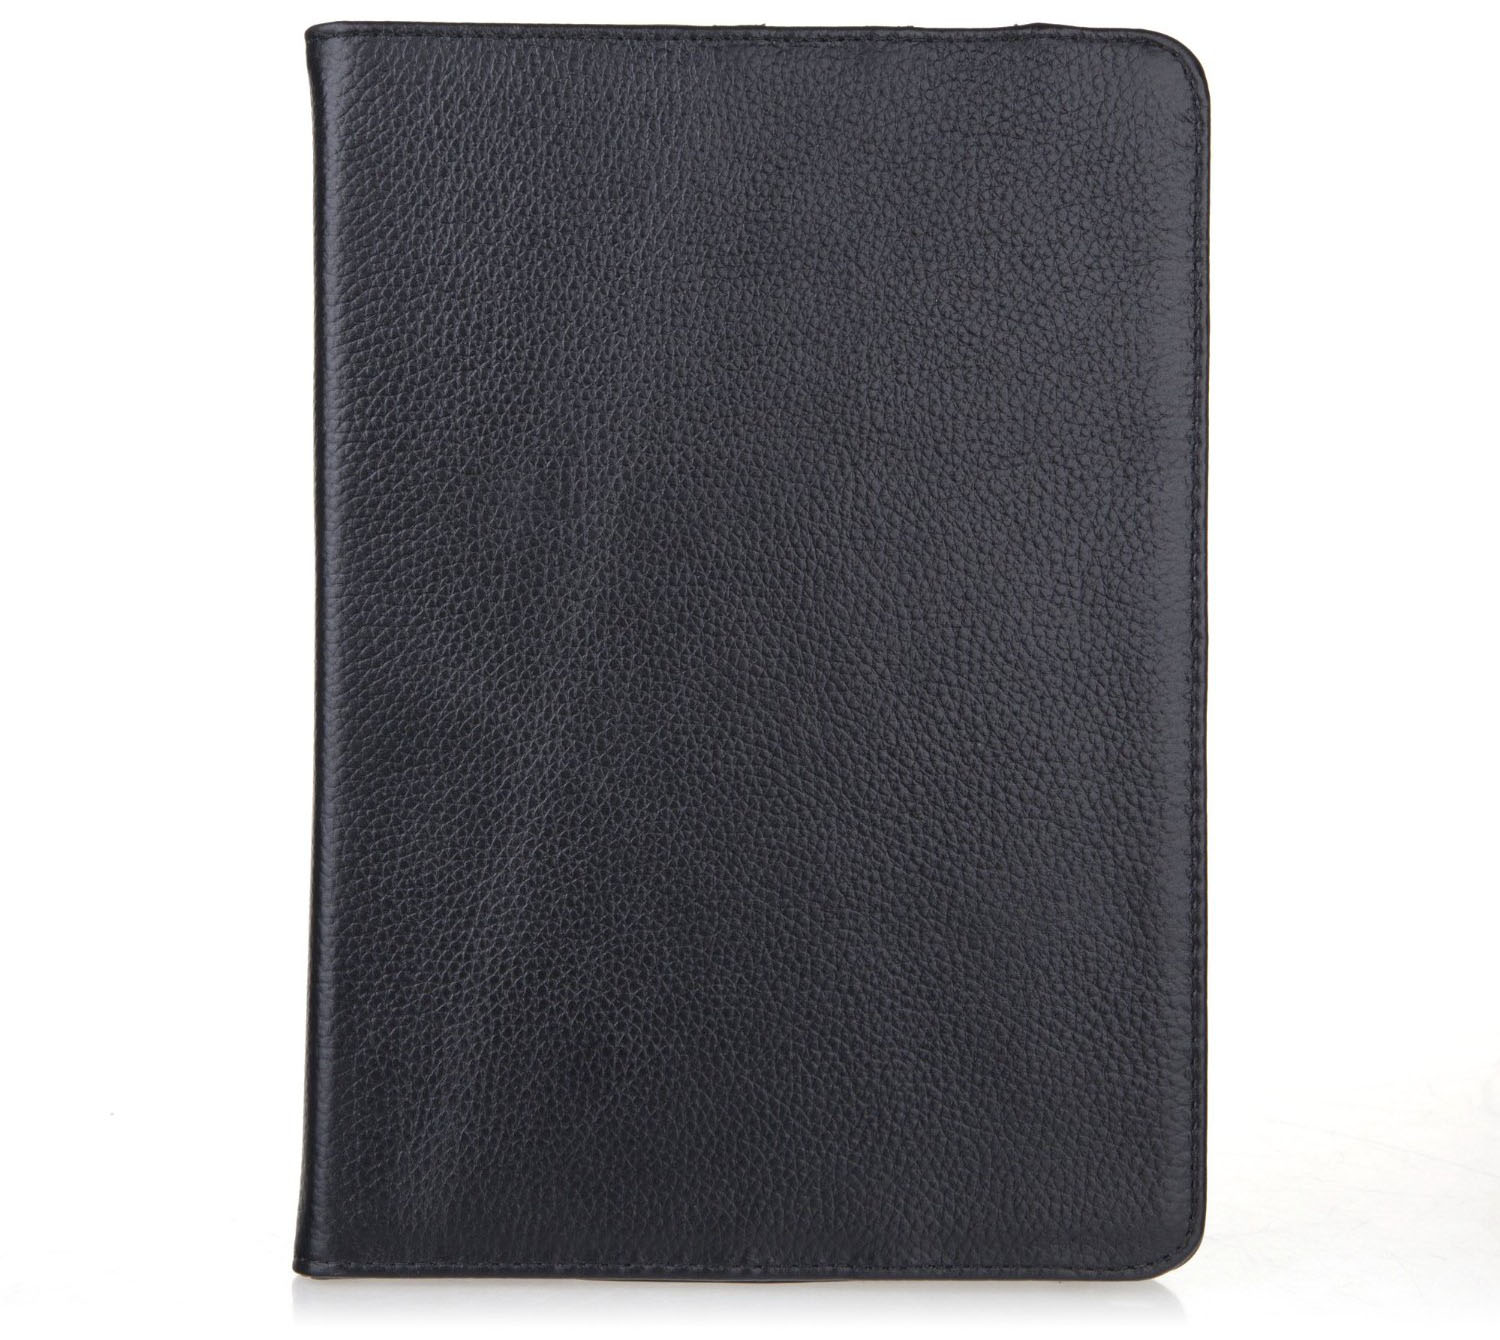 Black Genuine Leather iPad Air 2 Case